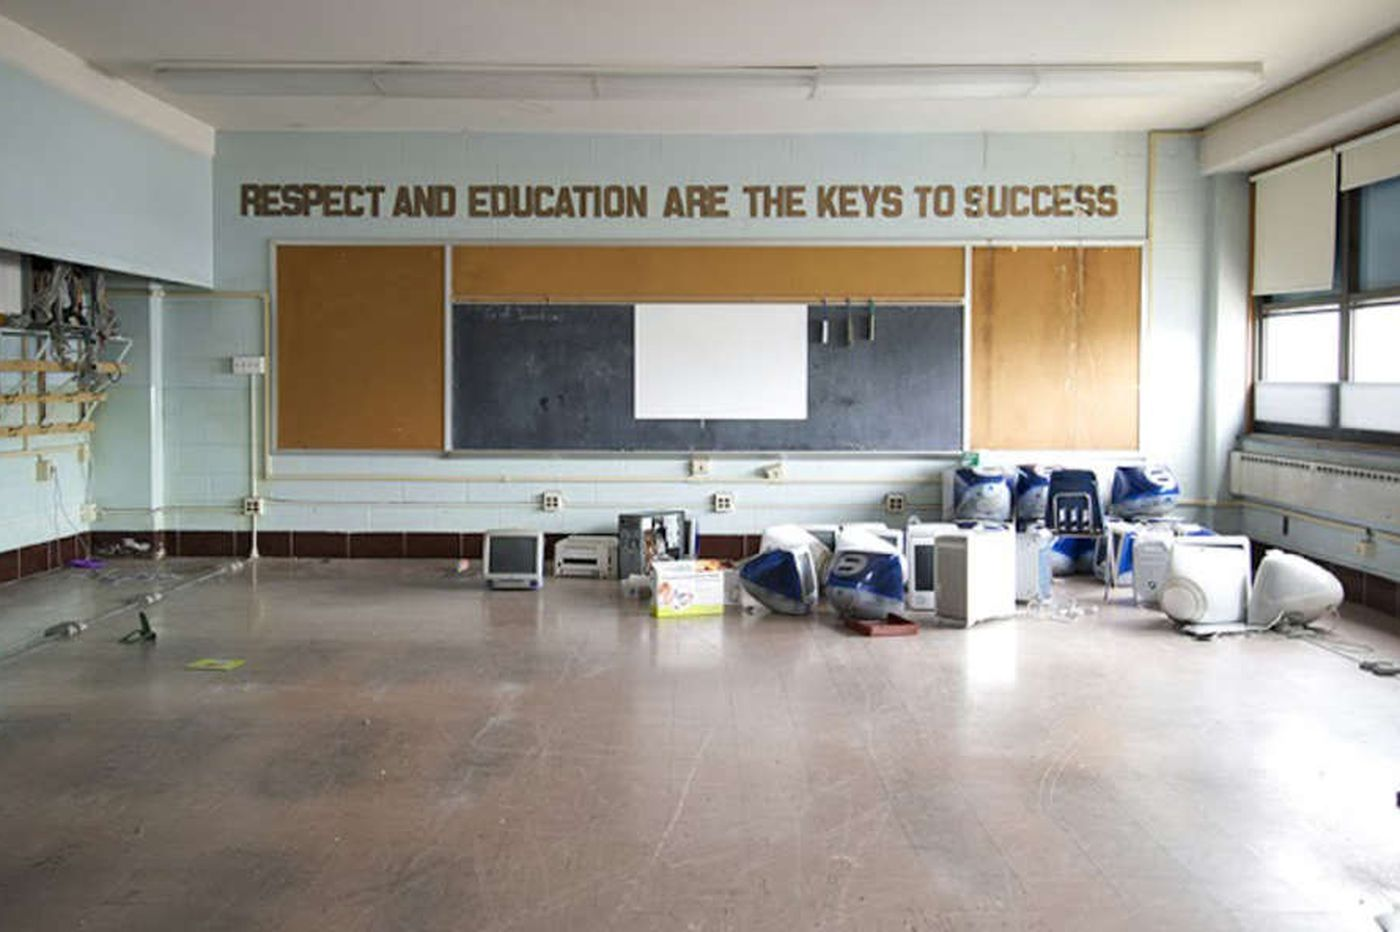 Jawnts: Glimpses into the shutdown of city schools